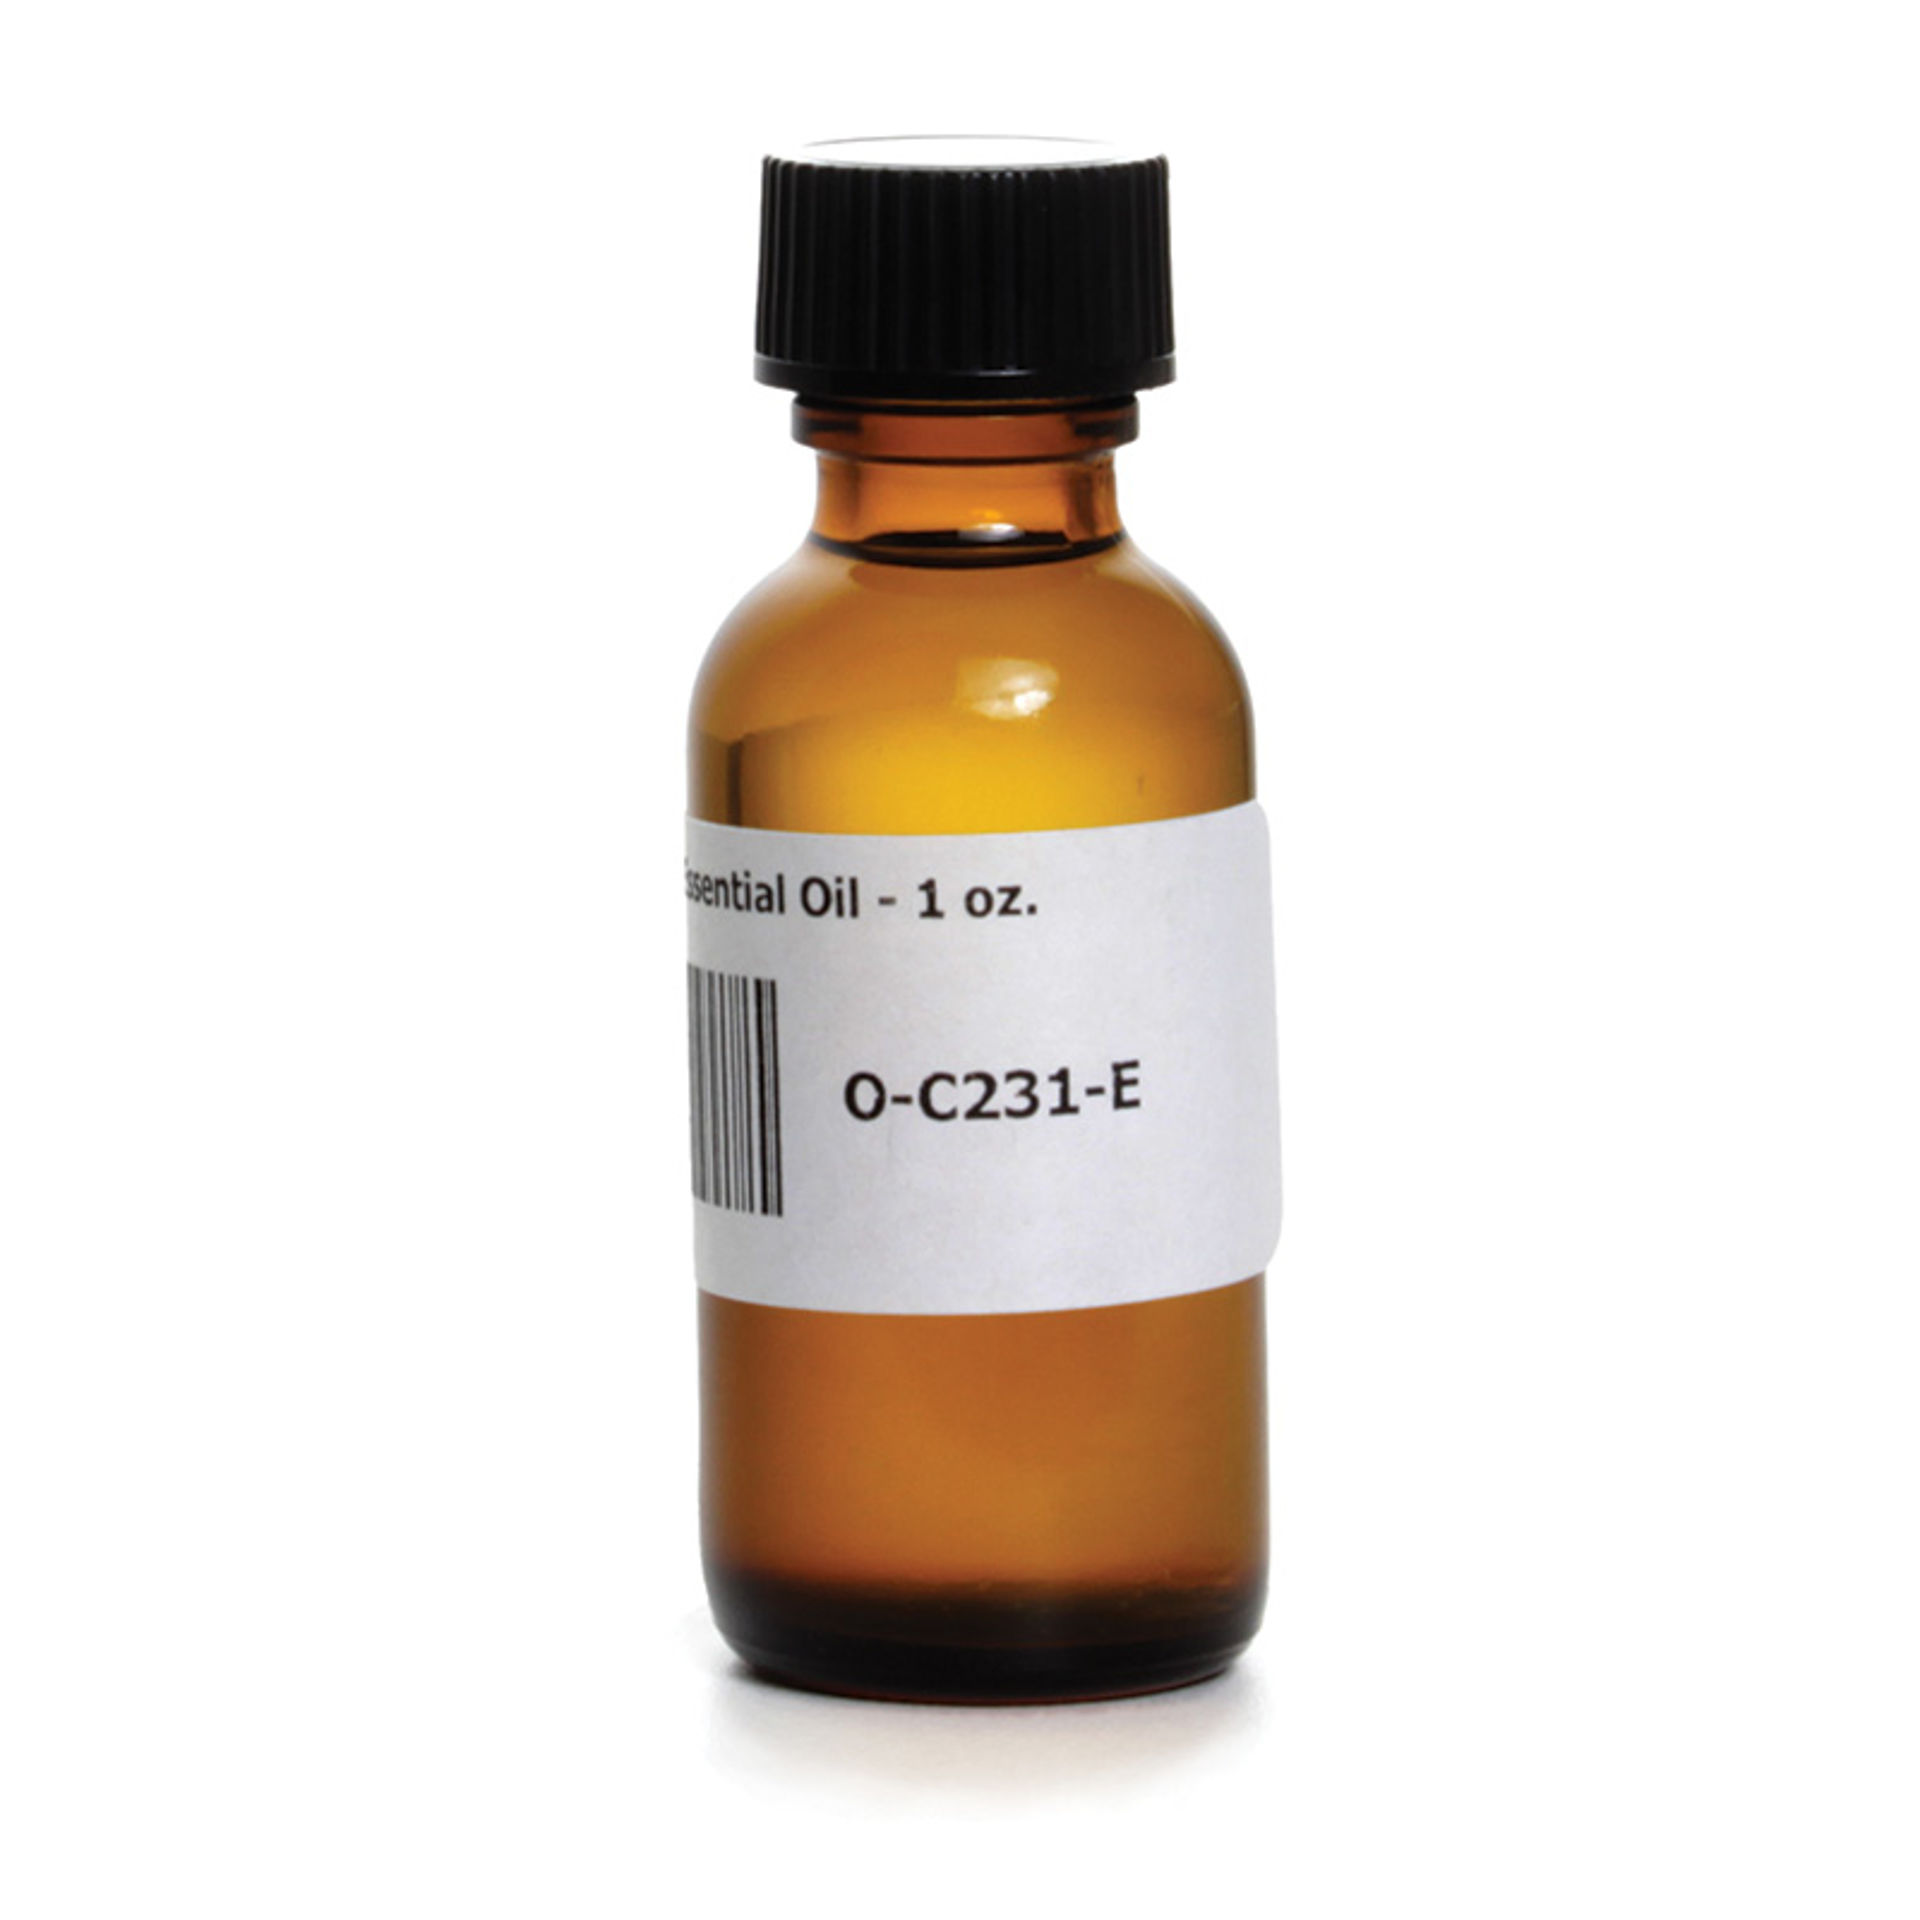 Picture of Camphor Essential Oil - 1 oz.